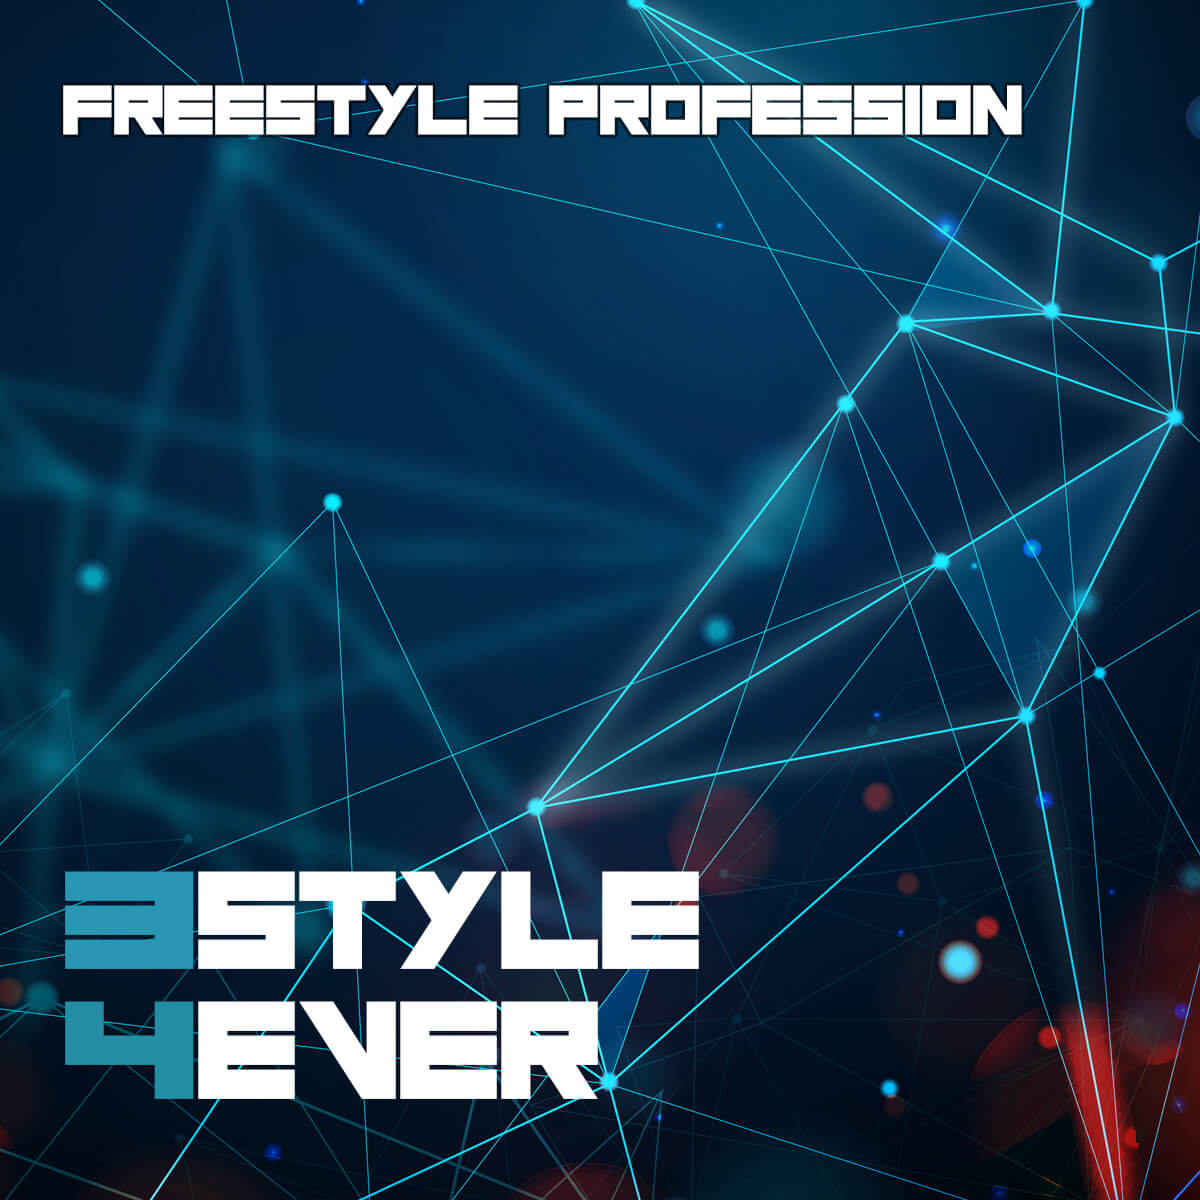 Freestyle Profession — 3style 4ever